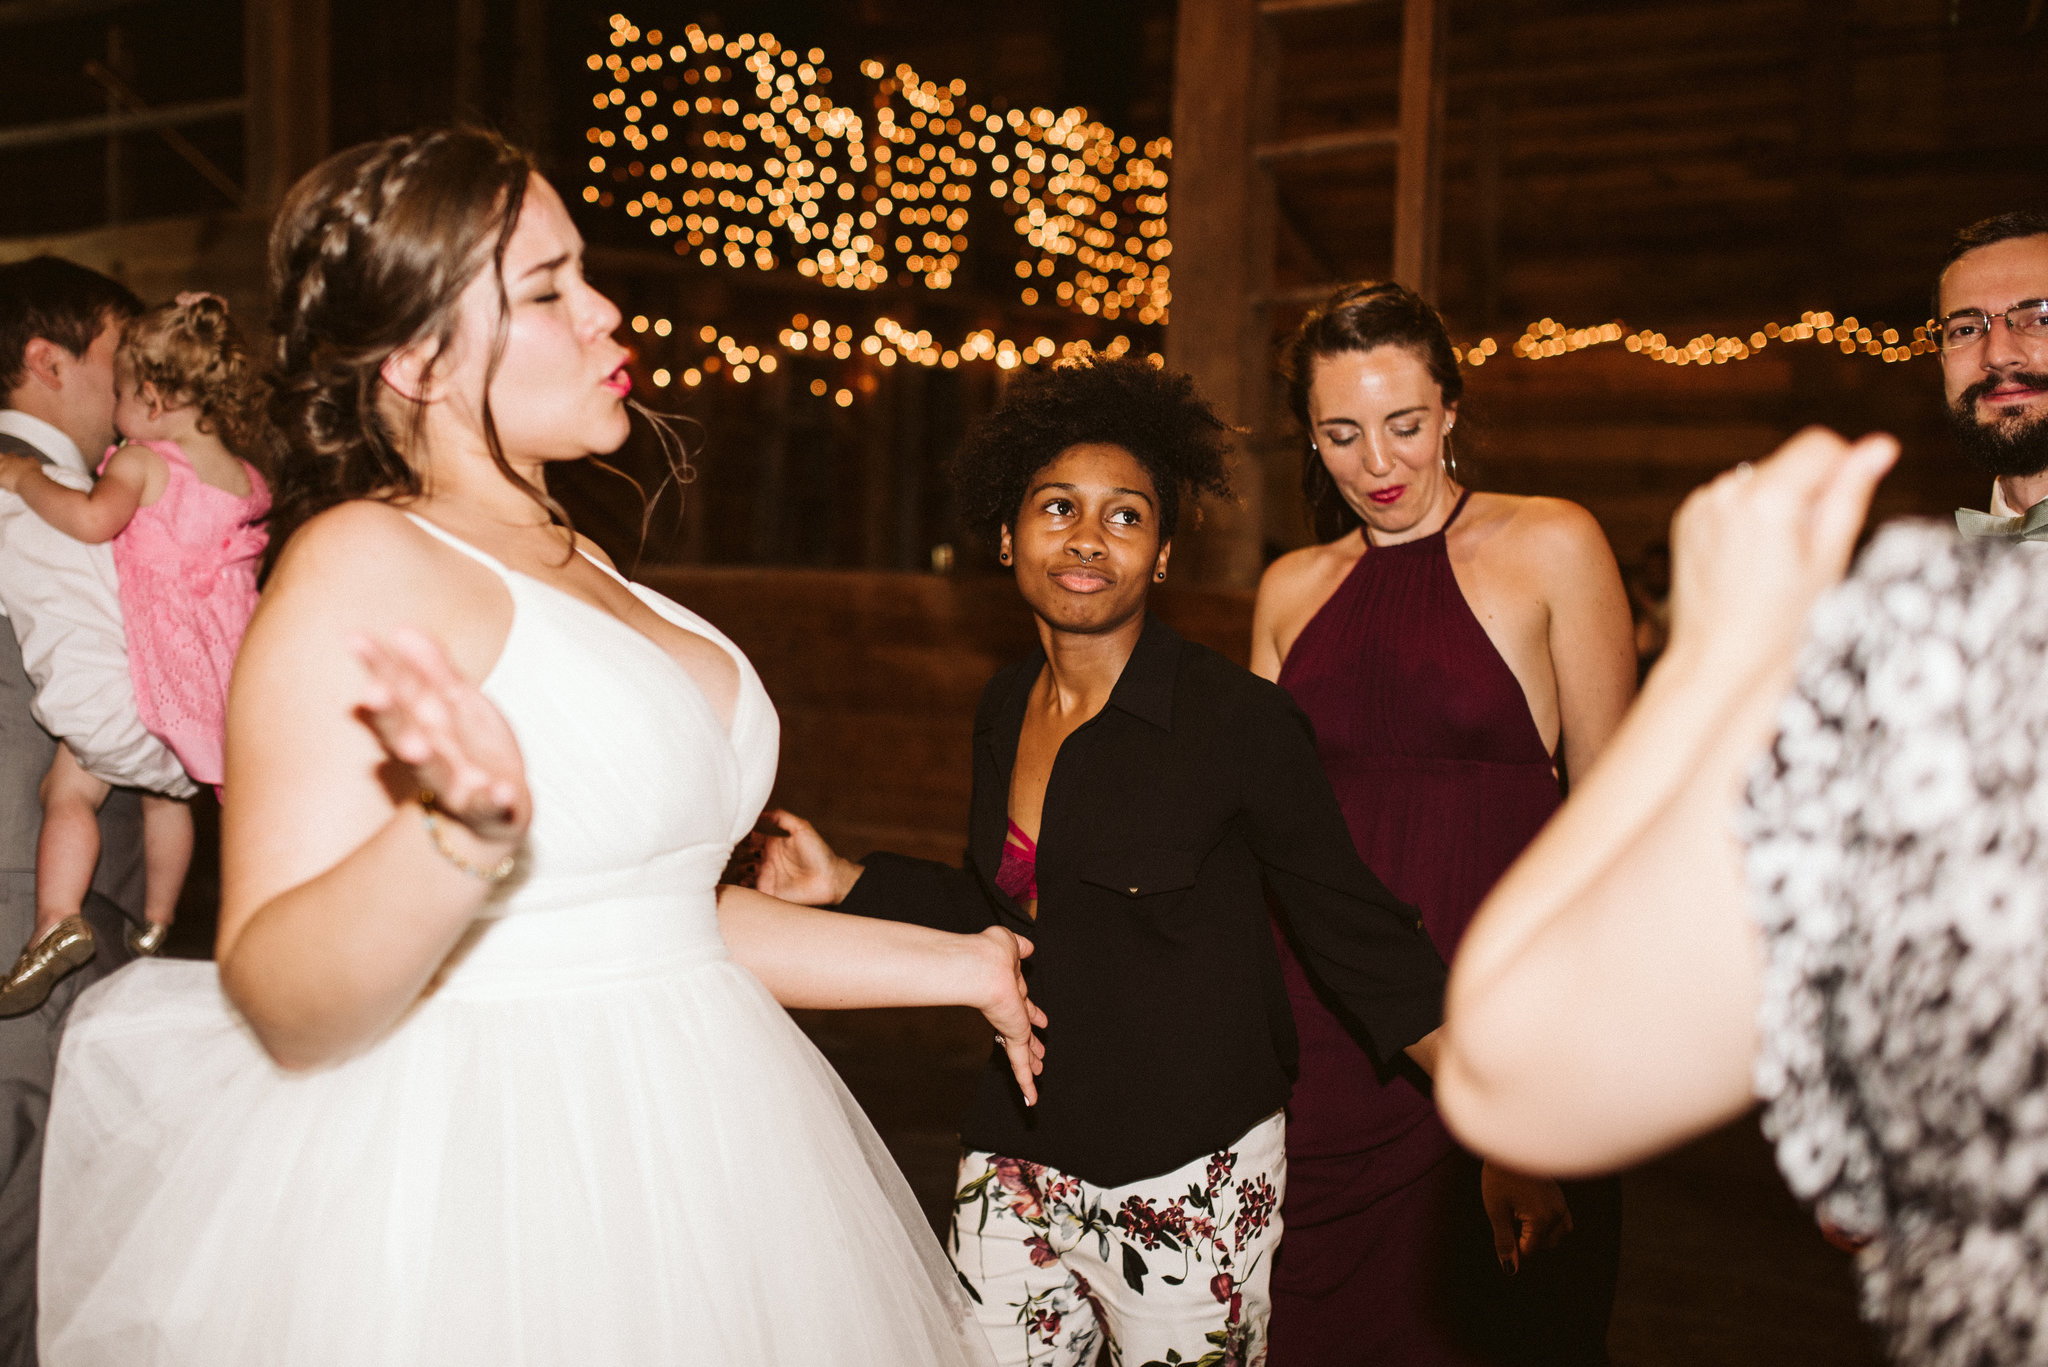 Rocklands Farm, Maryland, Intimate Wedding, Baltimore Wedding Photographer, Sungold Flower Co, Rustic, Romantic, Barn Wedding, Bride Dancing with Friends at Reception